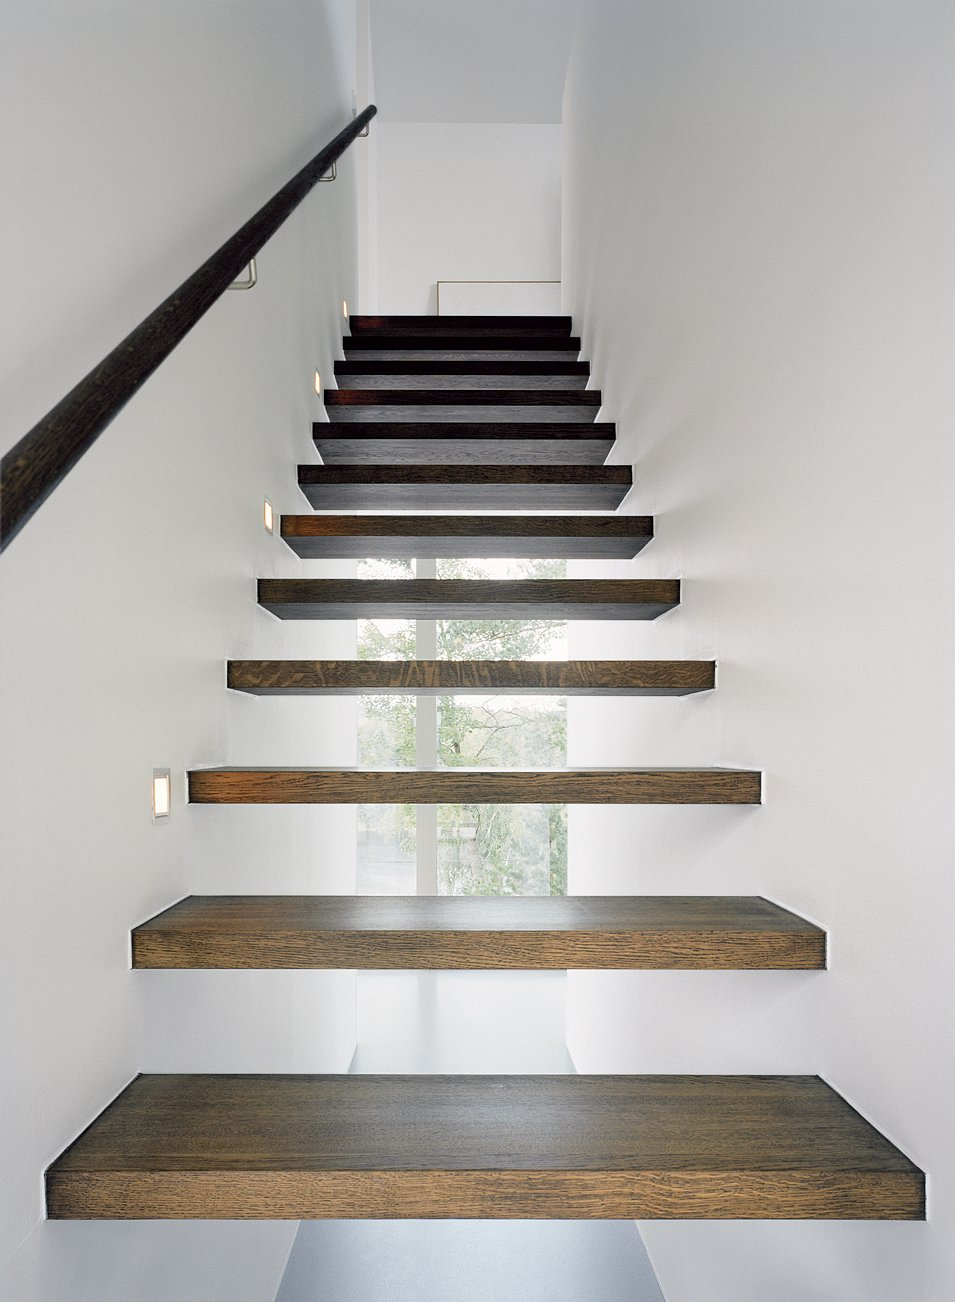 Arkitekthus charges a little extra for the see-through staircase; the basic house has under-staircase storage, which is more practical but less beautiful. Tagged: Staircase and Wood Tread. Sum of Its Parts - Photo 7 of 13